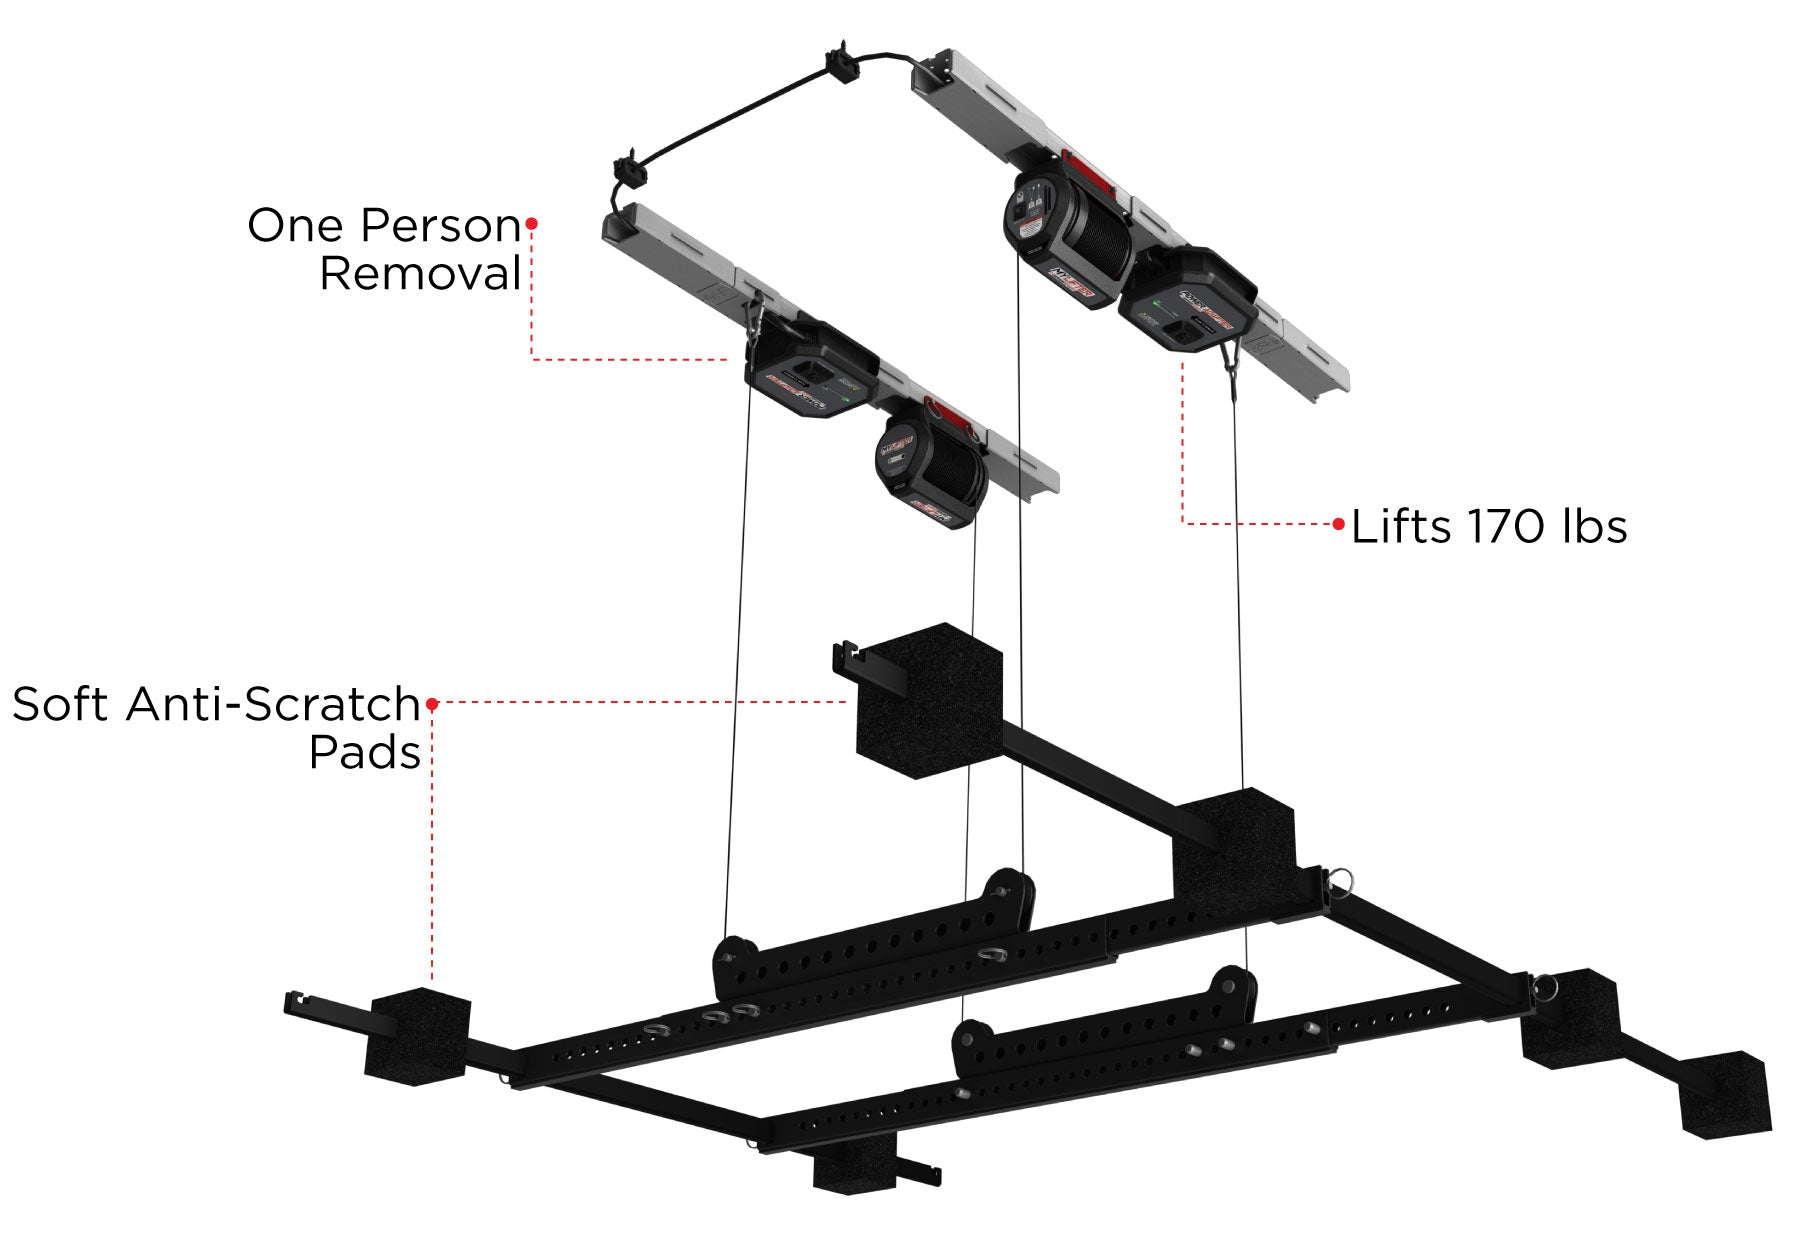 Hard Top Lifter Features